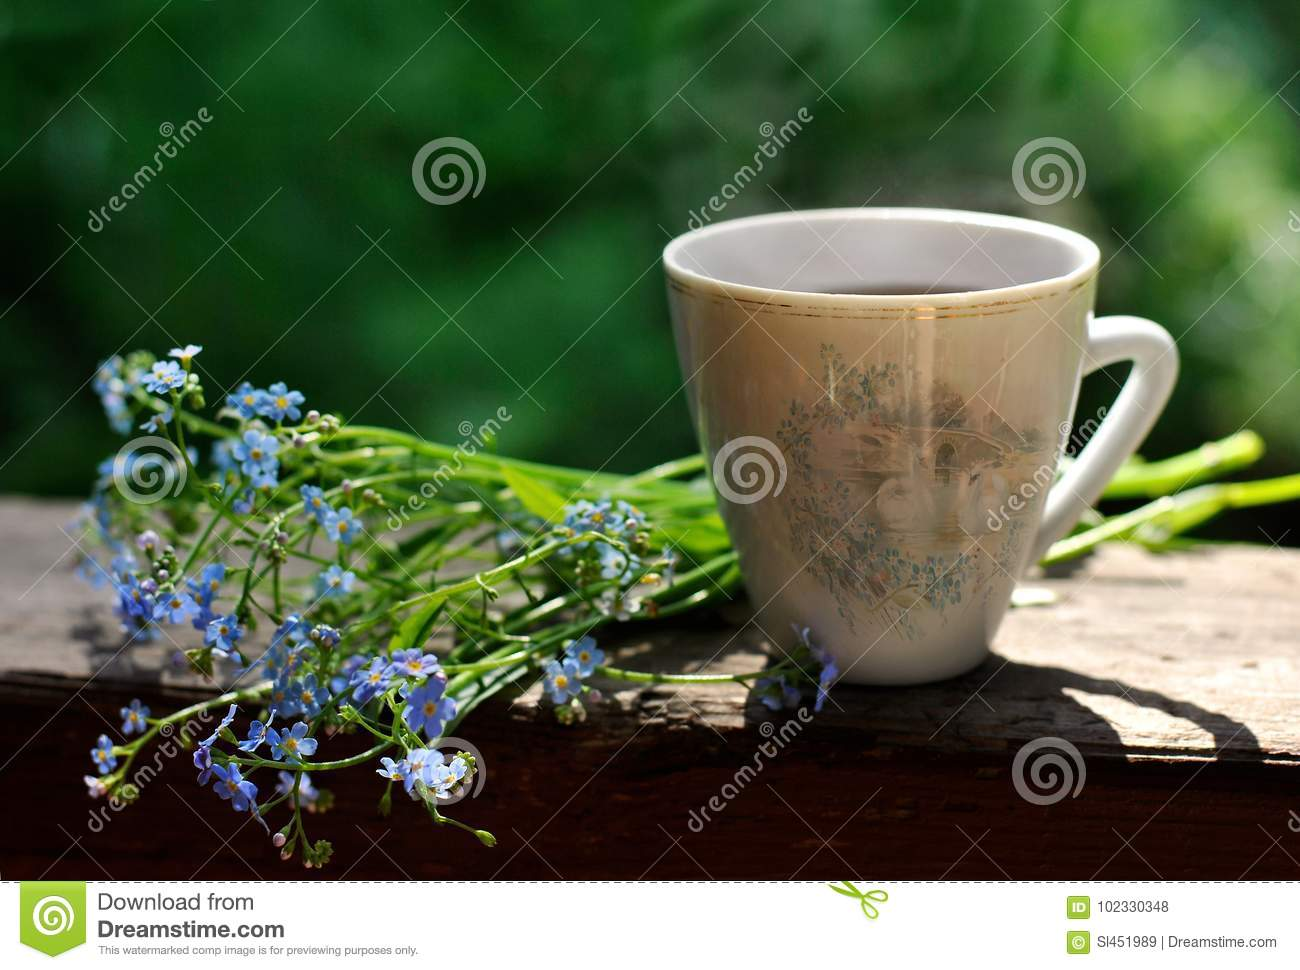 Bru Coffee Green Garden A Cup Of Coffee And Blue Flowers Near It On A Green Garden